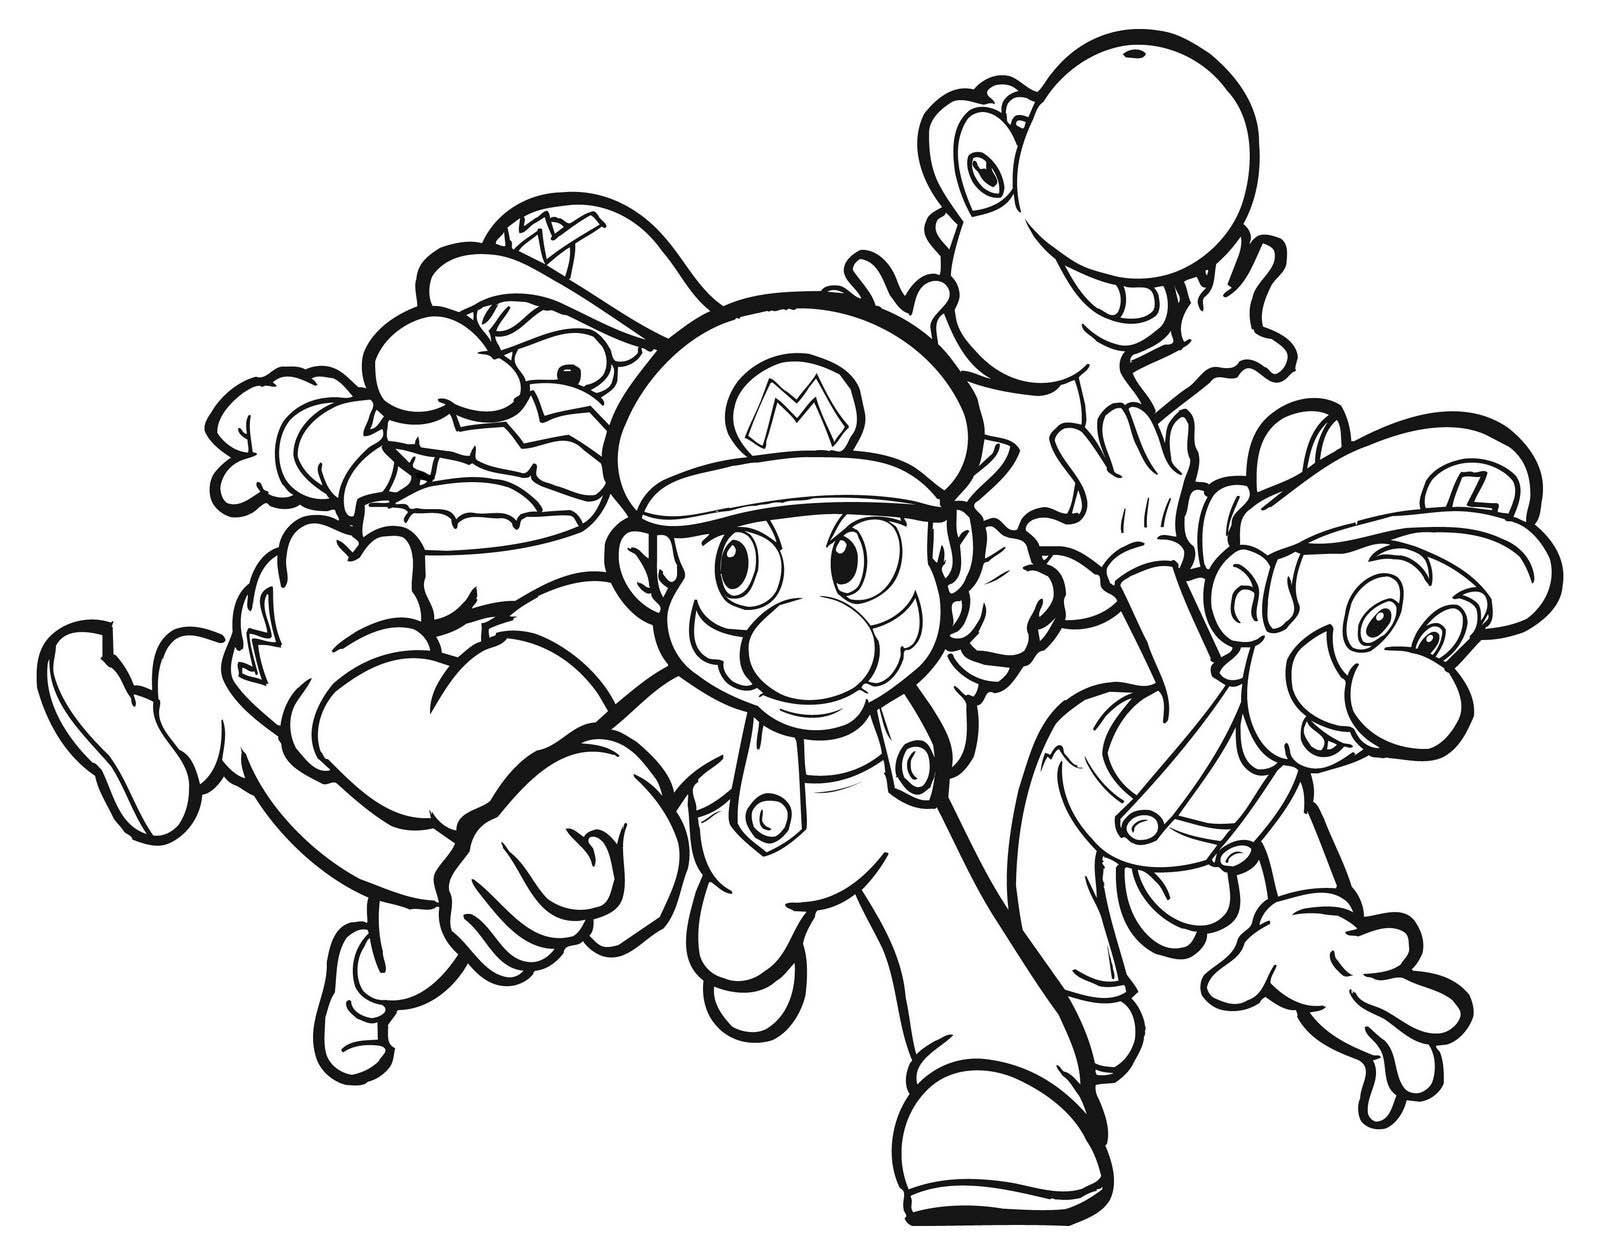 Group Mario Coloring Pages Mario Bros Games Mario Bros Coloring Home Bros Col In 2020 Cartoon Coloring Pages Super Mario Coloring Pages Cool Coloring Pages